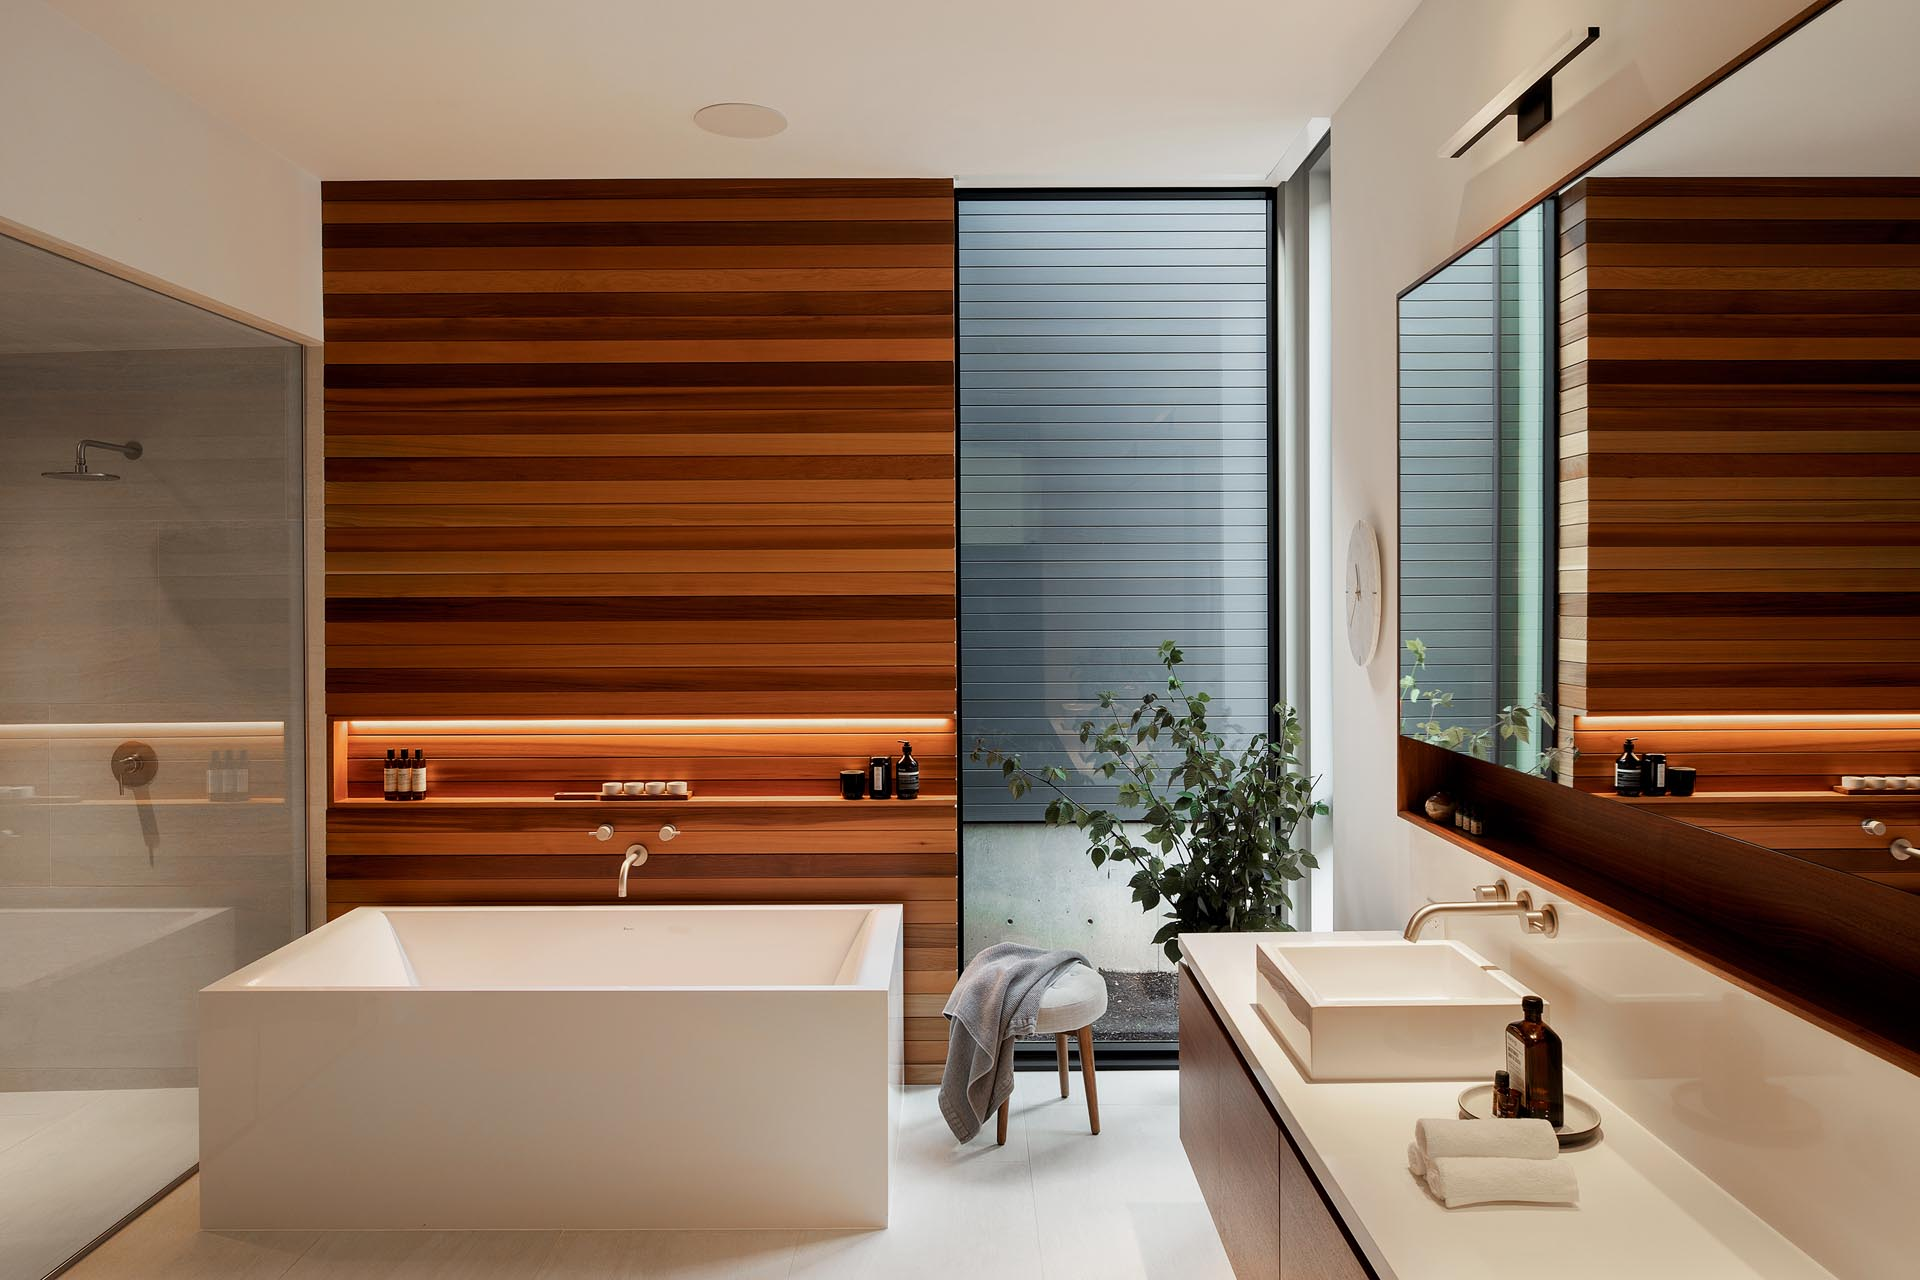 This en-suite bathroom has a warm wood accent wall with varying tones, and includes a horizontal shelving niche with hidden lighting.